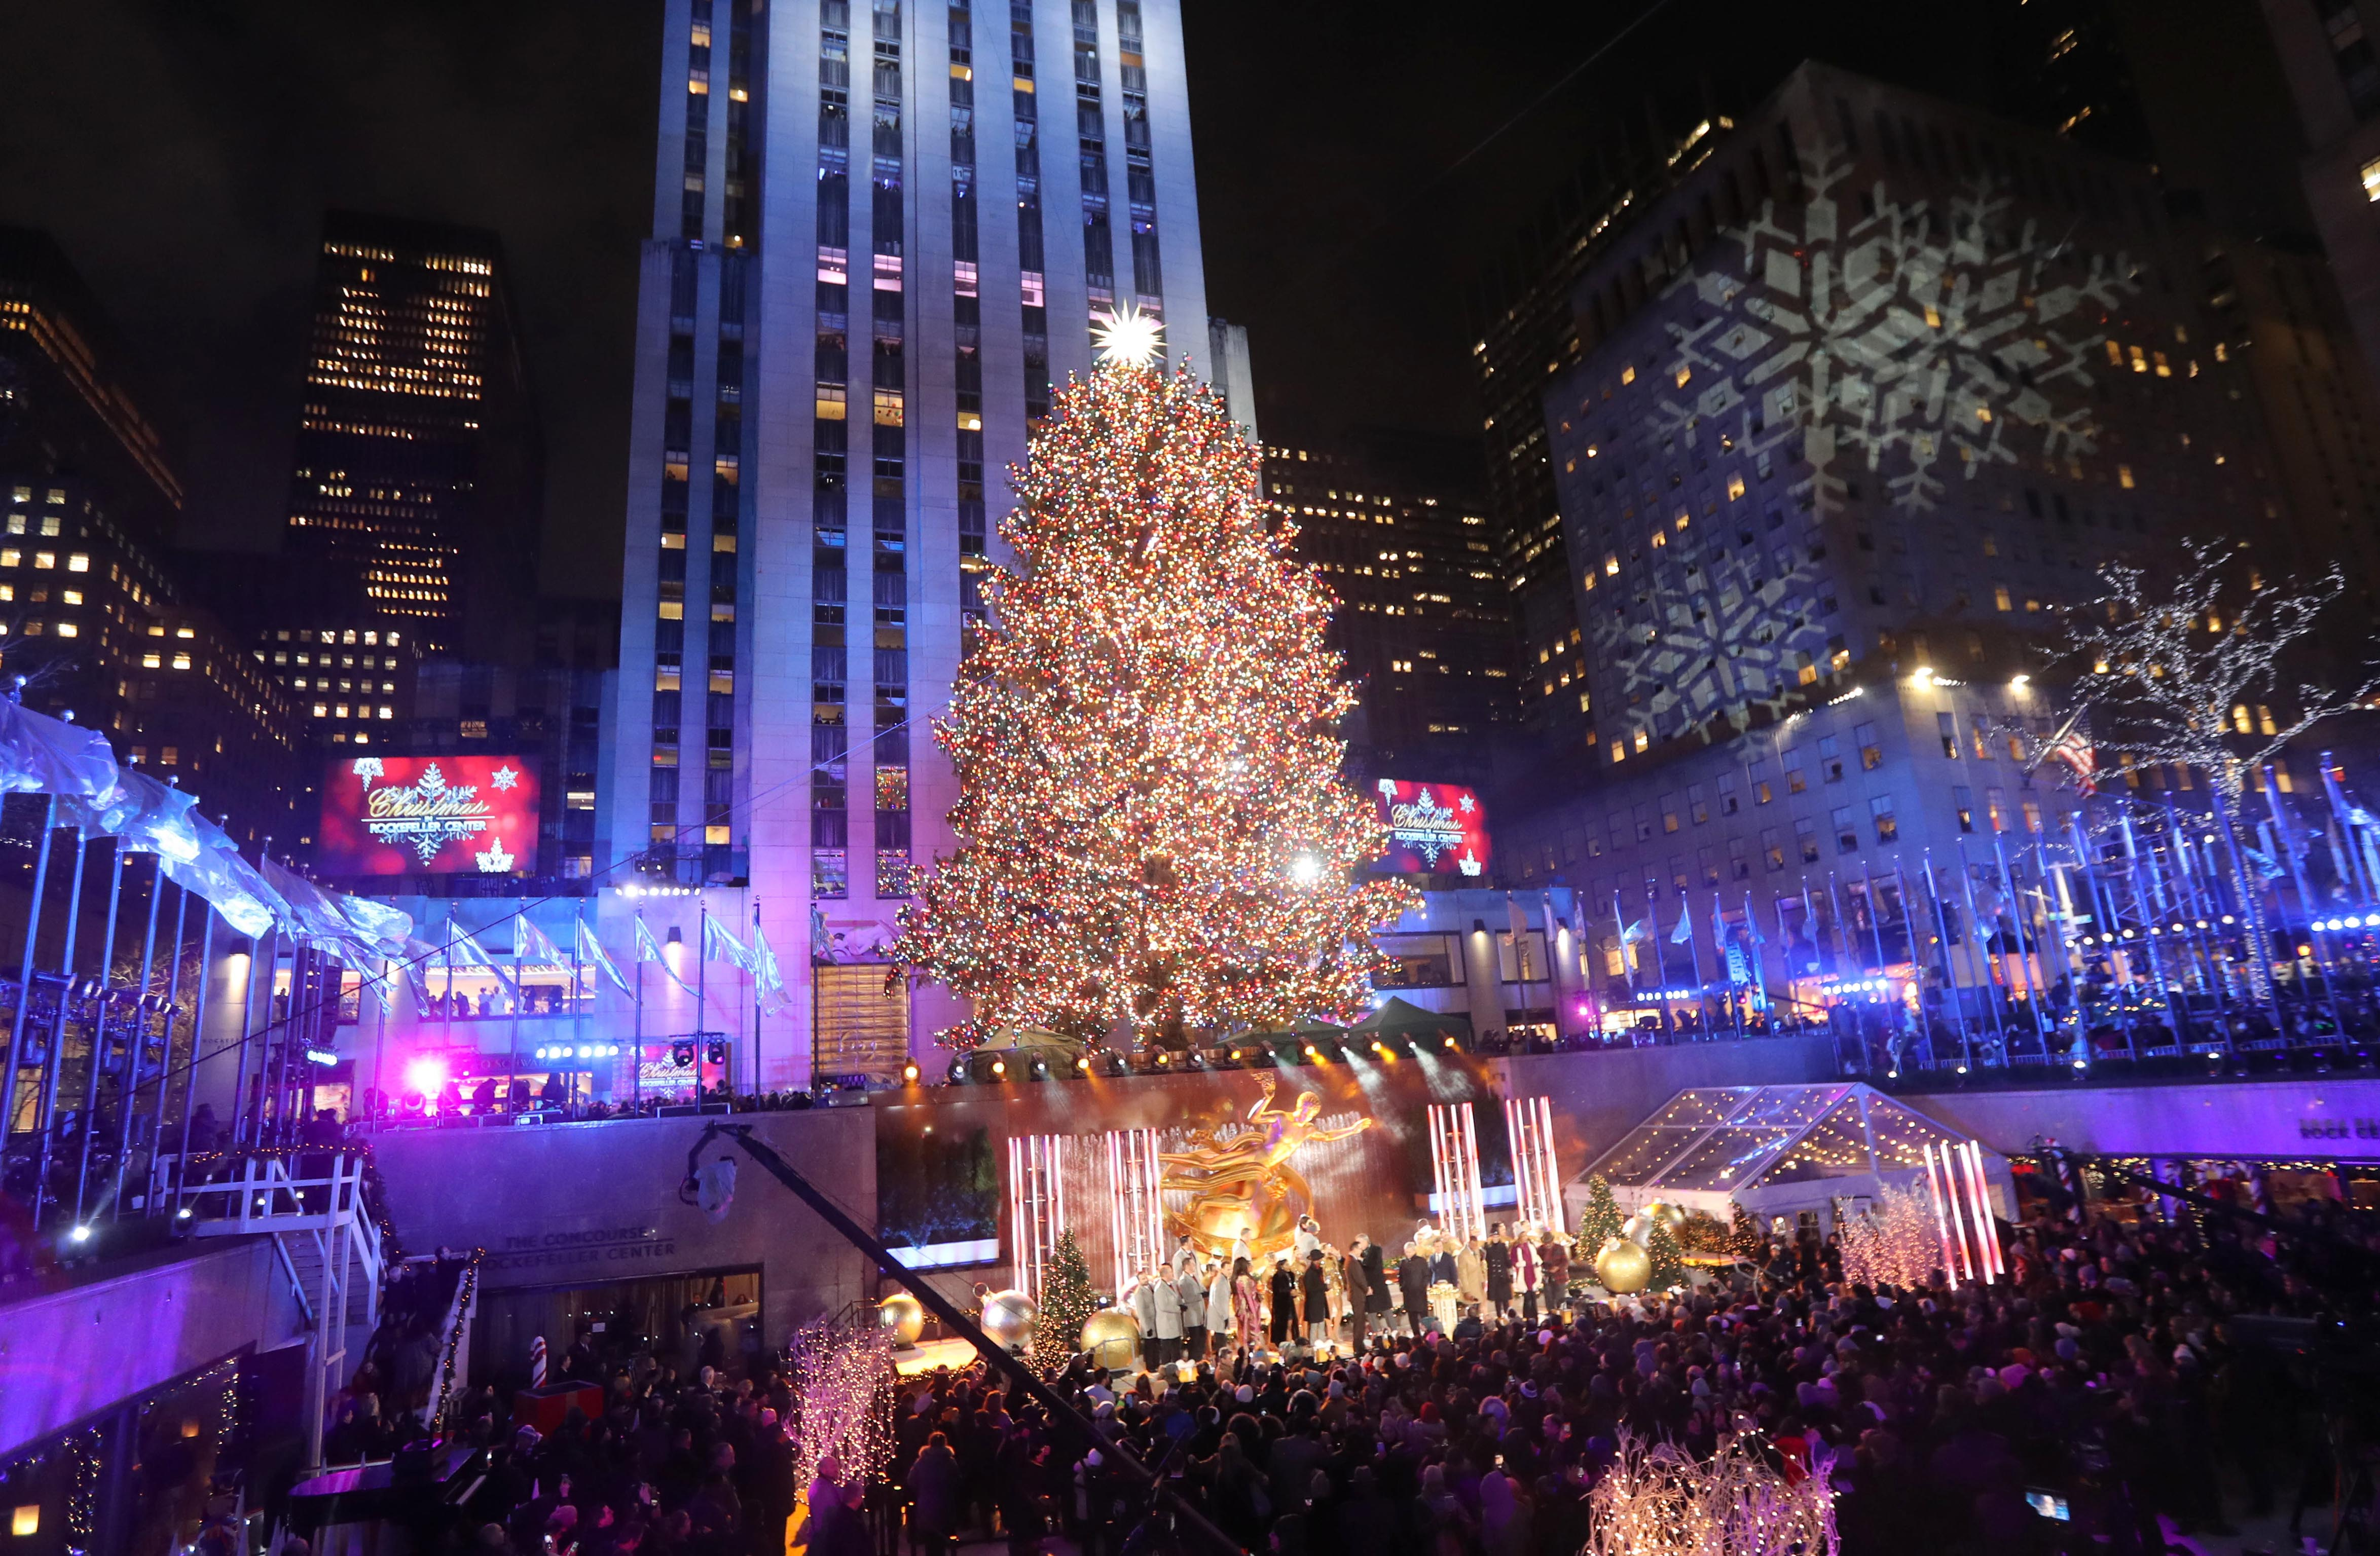 Watch the Rockefeller Center Christmas Tree being lit